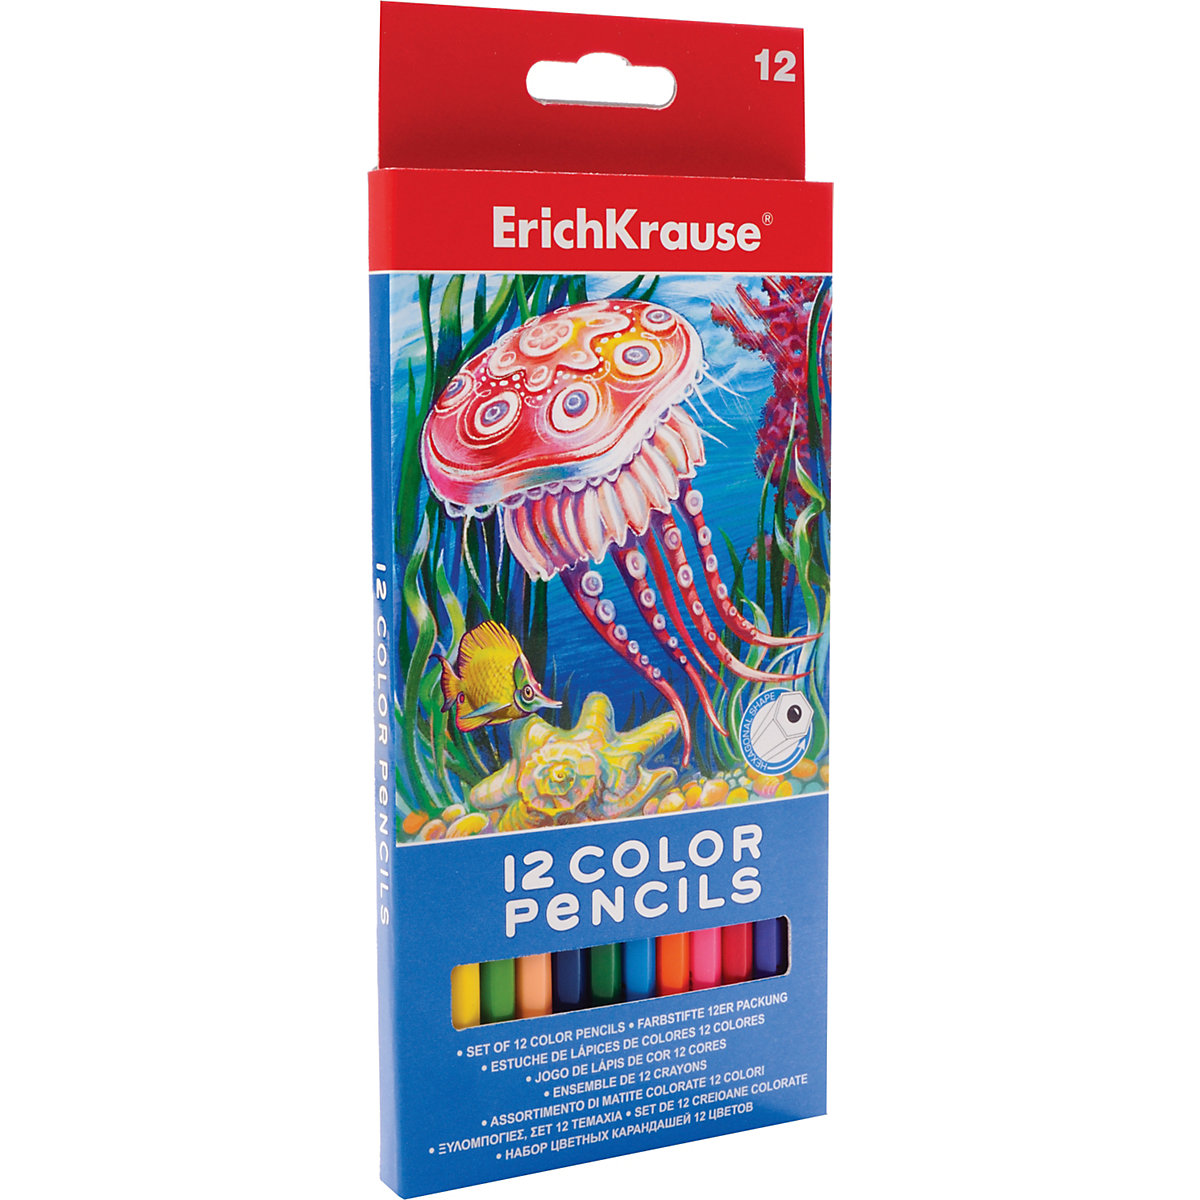 ERICHKRAUSE Wooden Colored Pencils 5409230 colored pencil for boys and girls children sets MTpromo